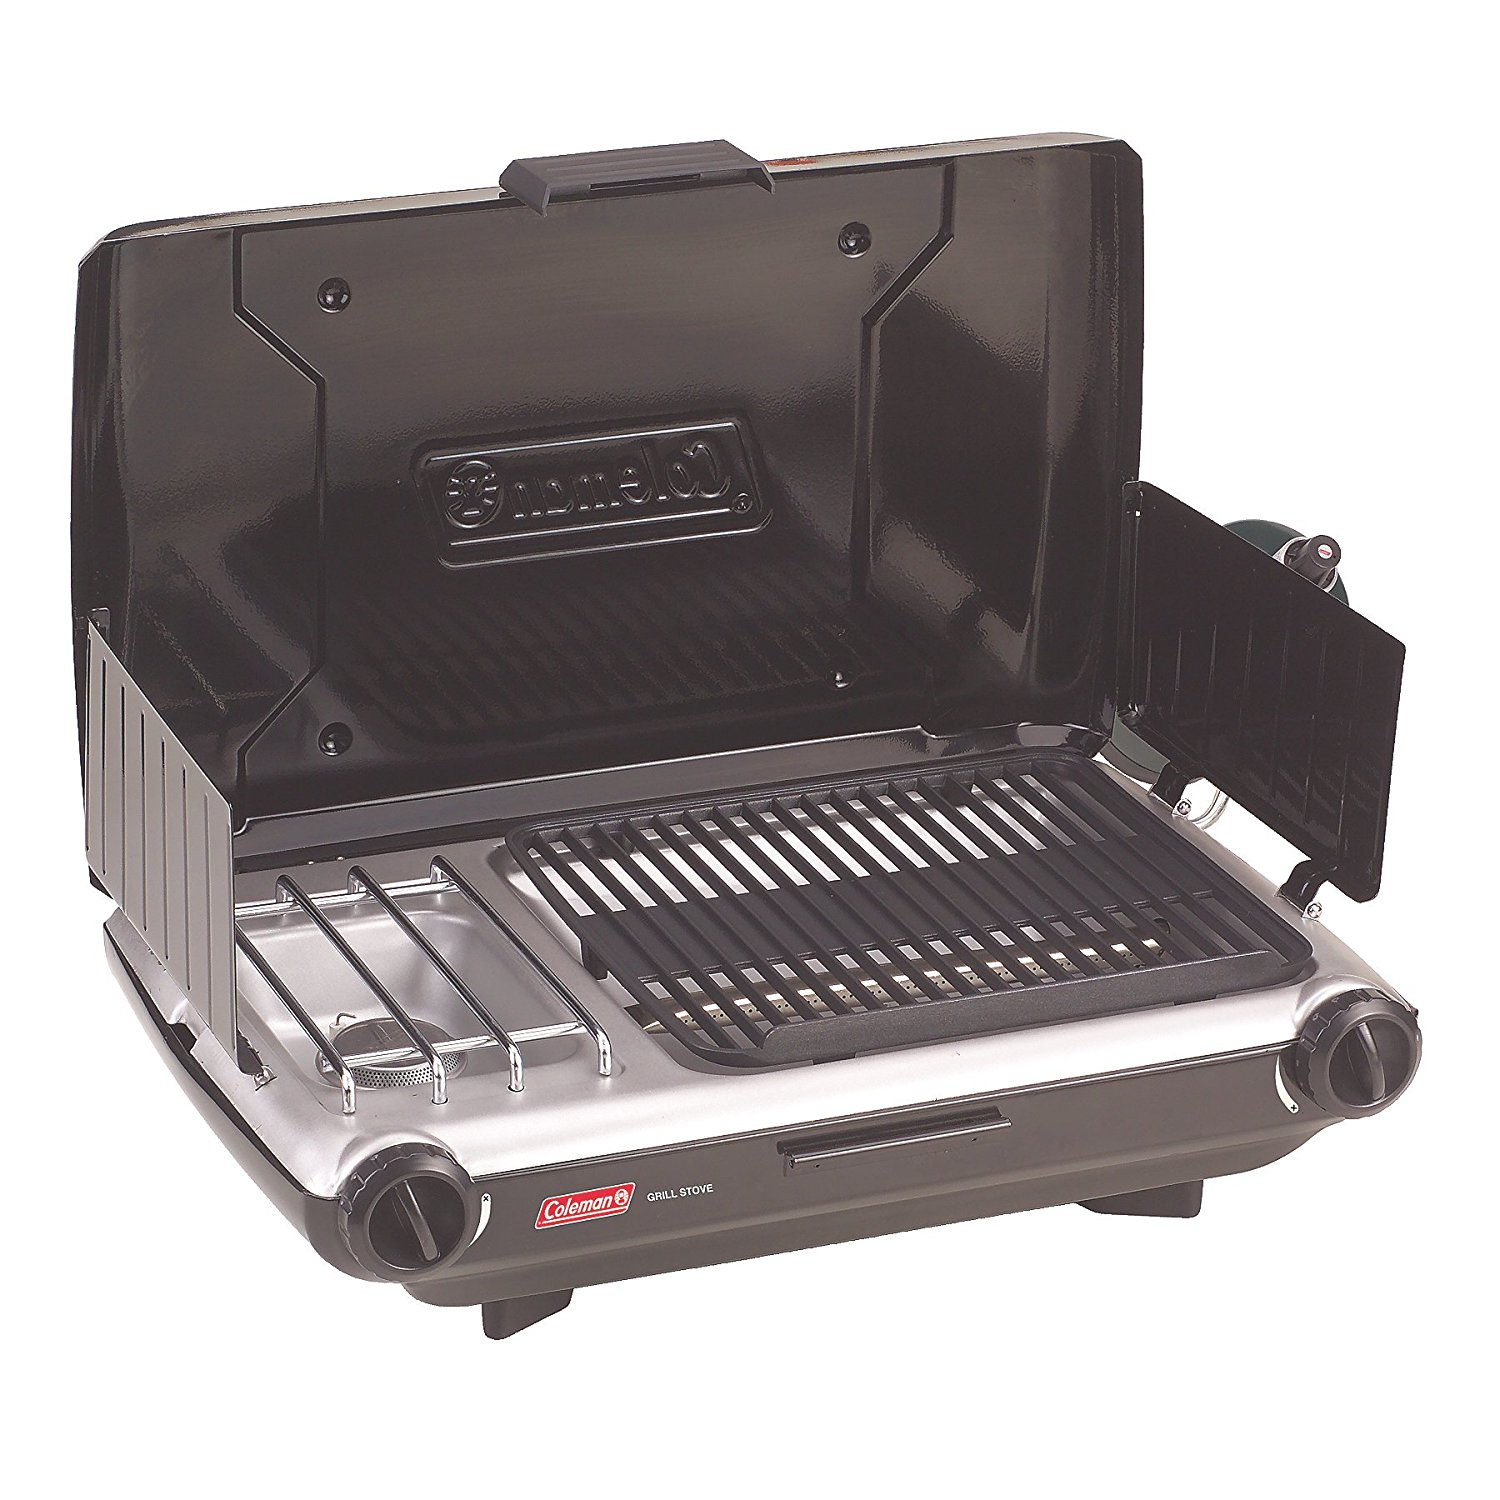 coleman, camp stove, grill, camping, cross country, roadtrip